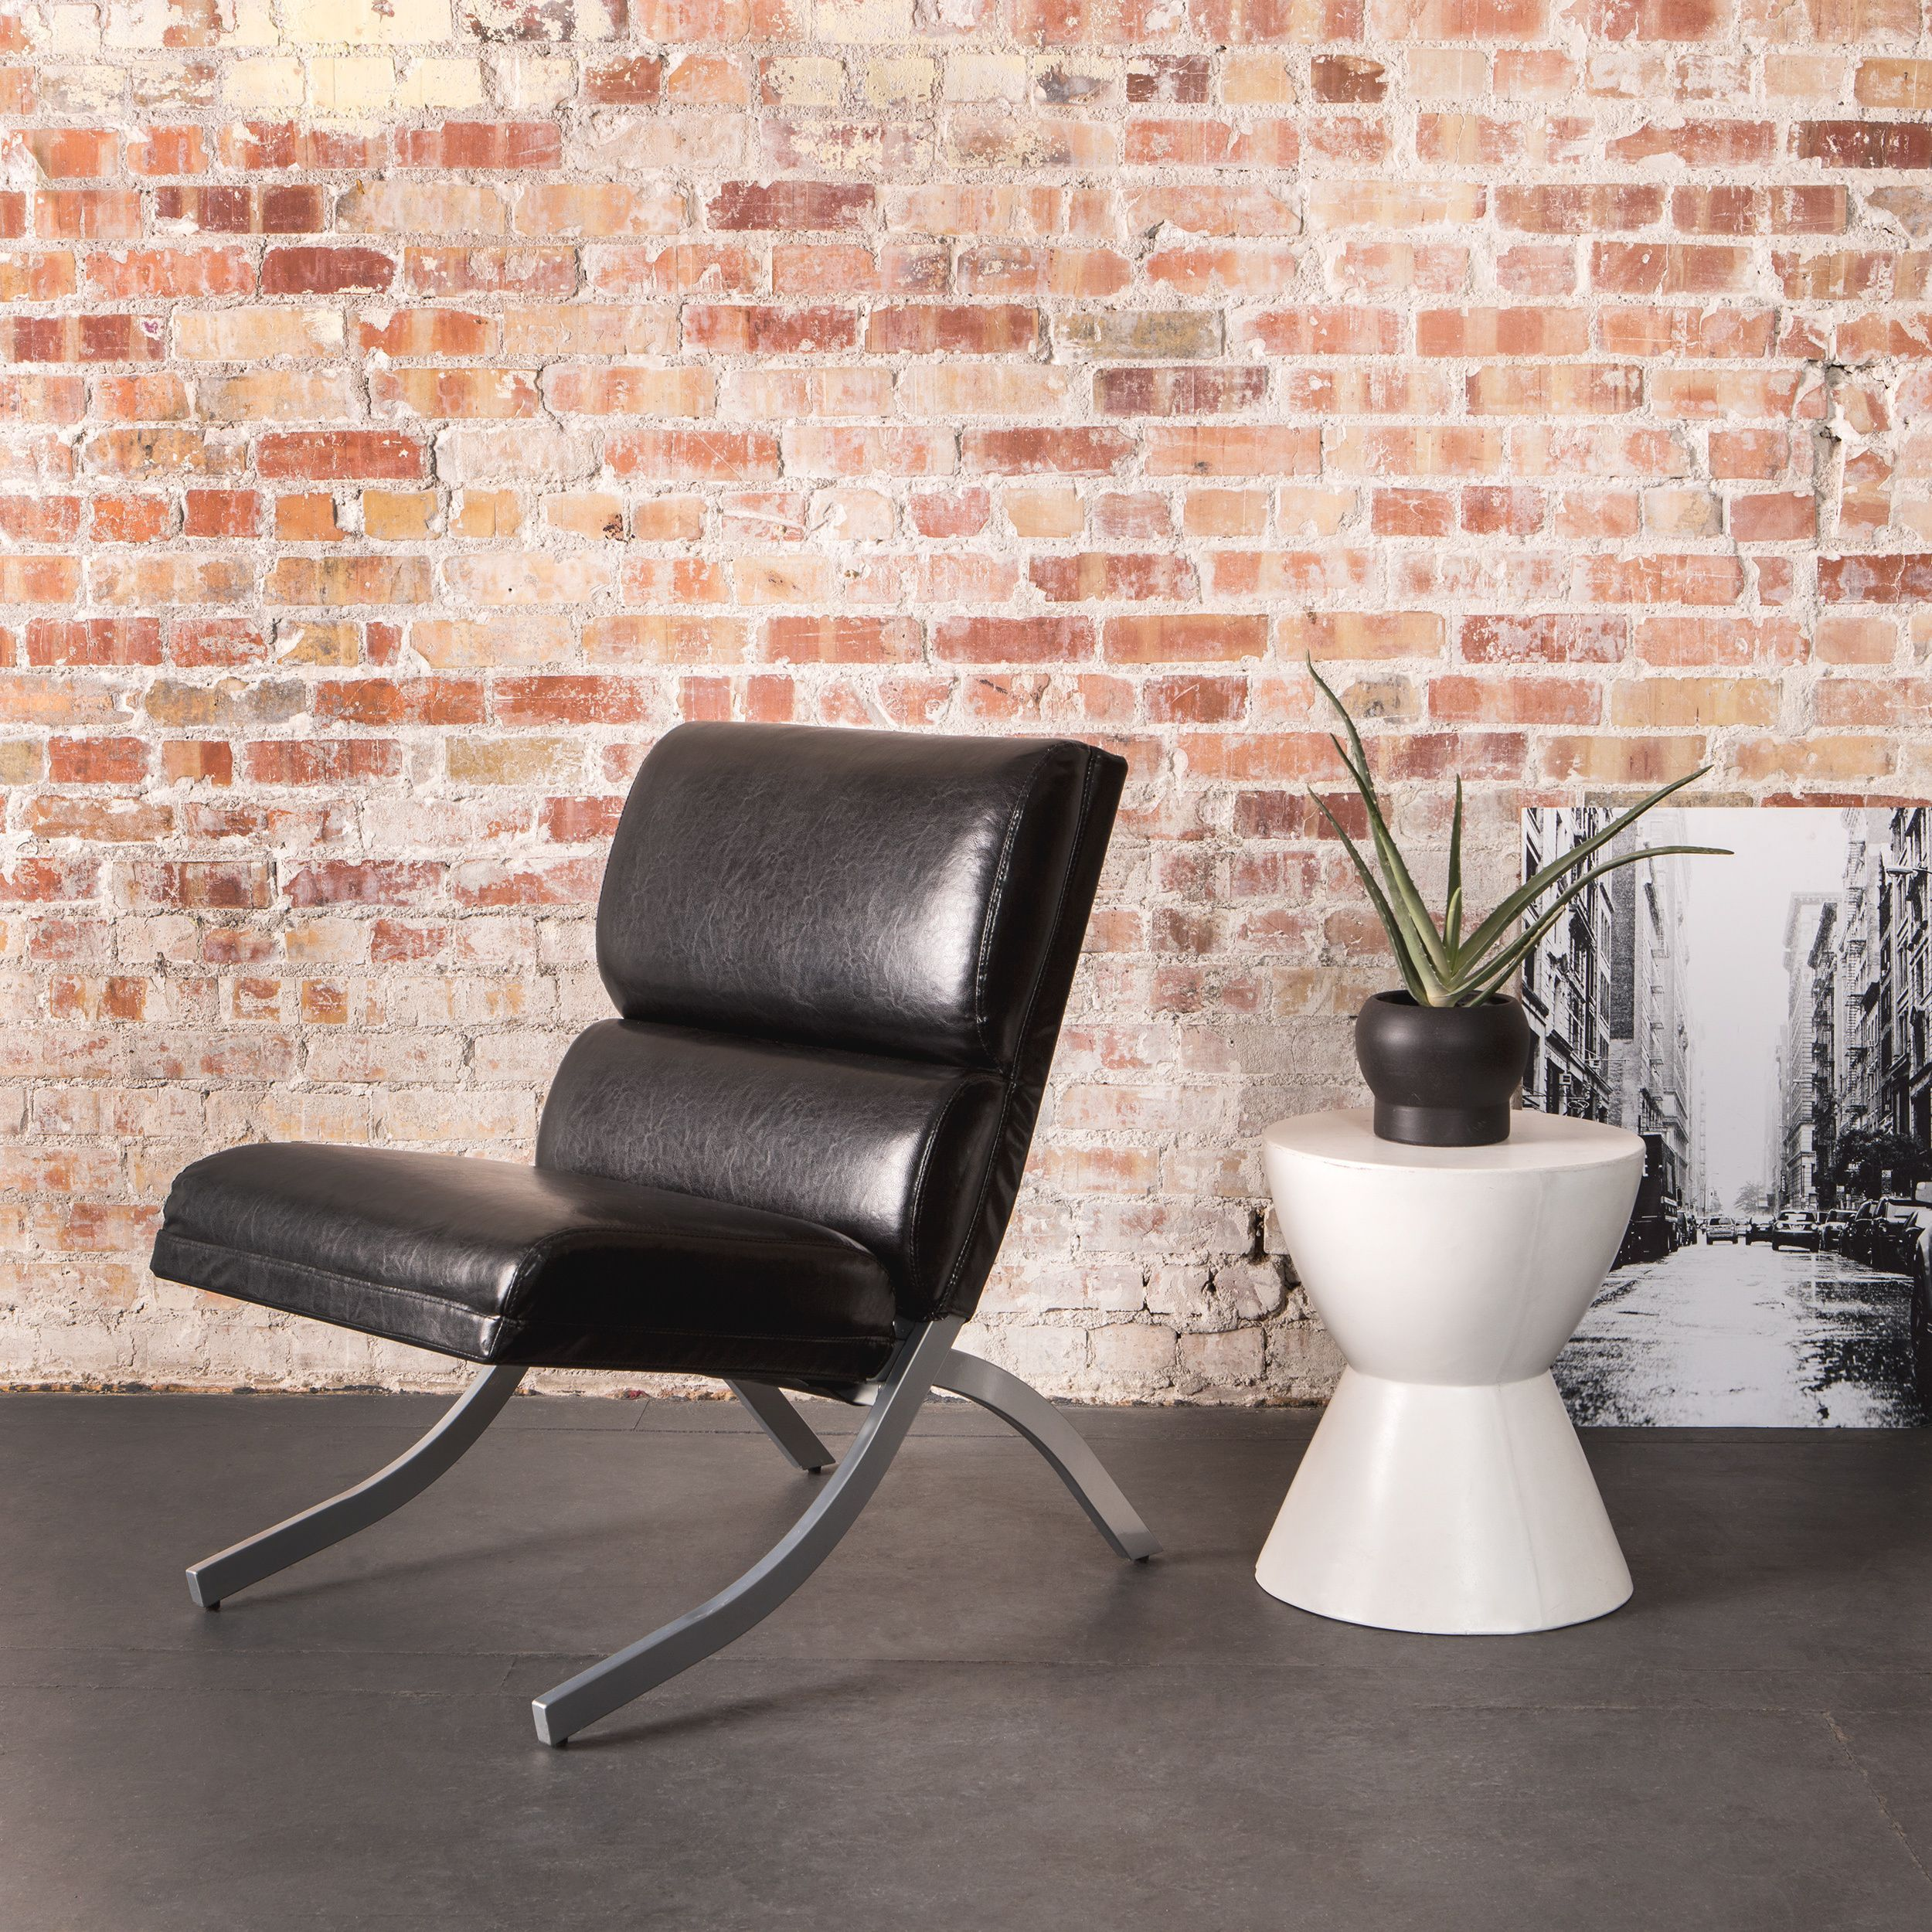 Admirable Strick Bolton Rialto Black Bonded Leather Chair Faux Alphanode Cool Chair Designs And Ideas Alphanodeonline